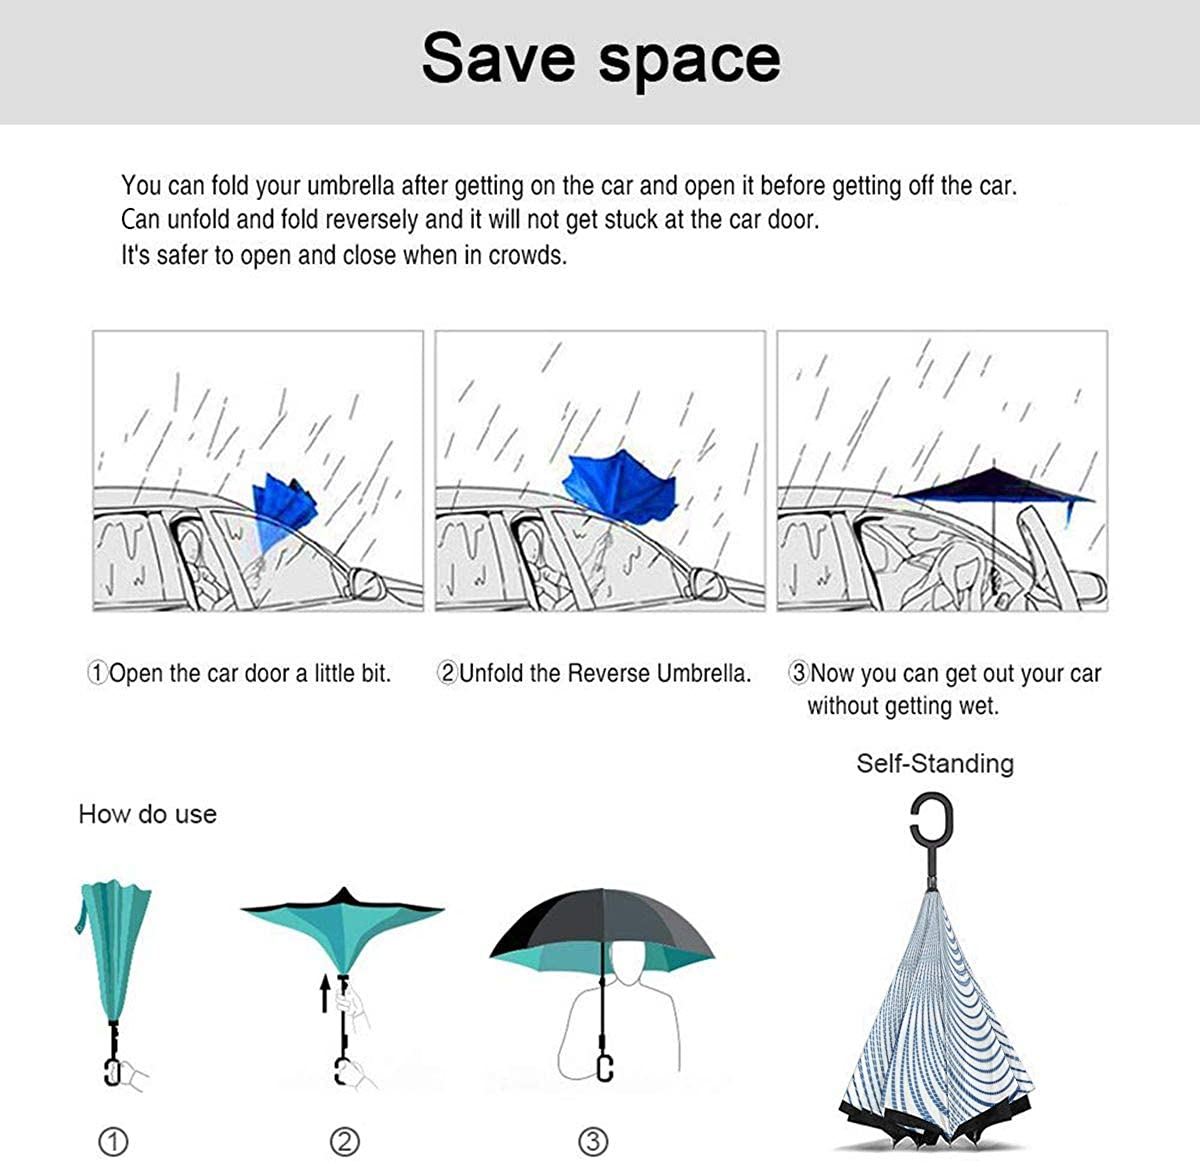 Reverse Umbrella Double Layer Inverted Umbrellas For Car Rain Outdoor With C-Shaped Handle Transformation Concentration Center Ellipse Form Customized